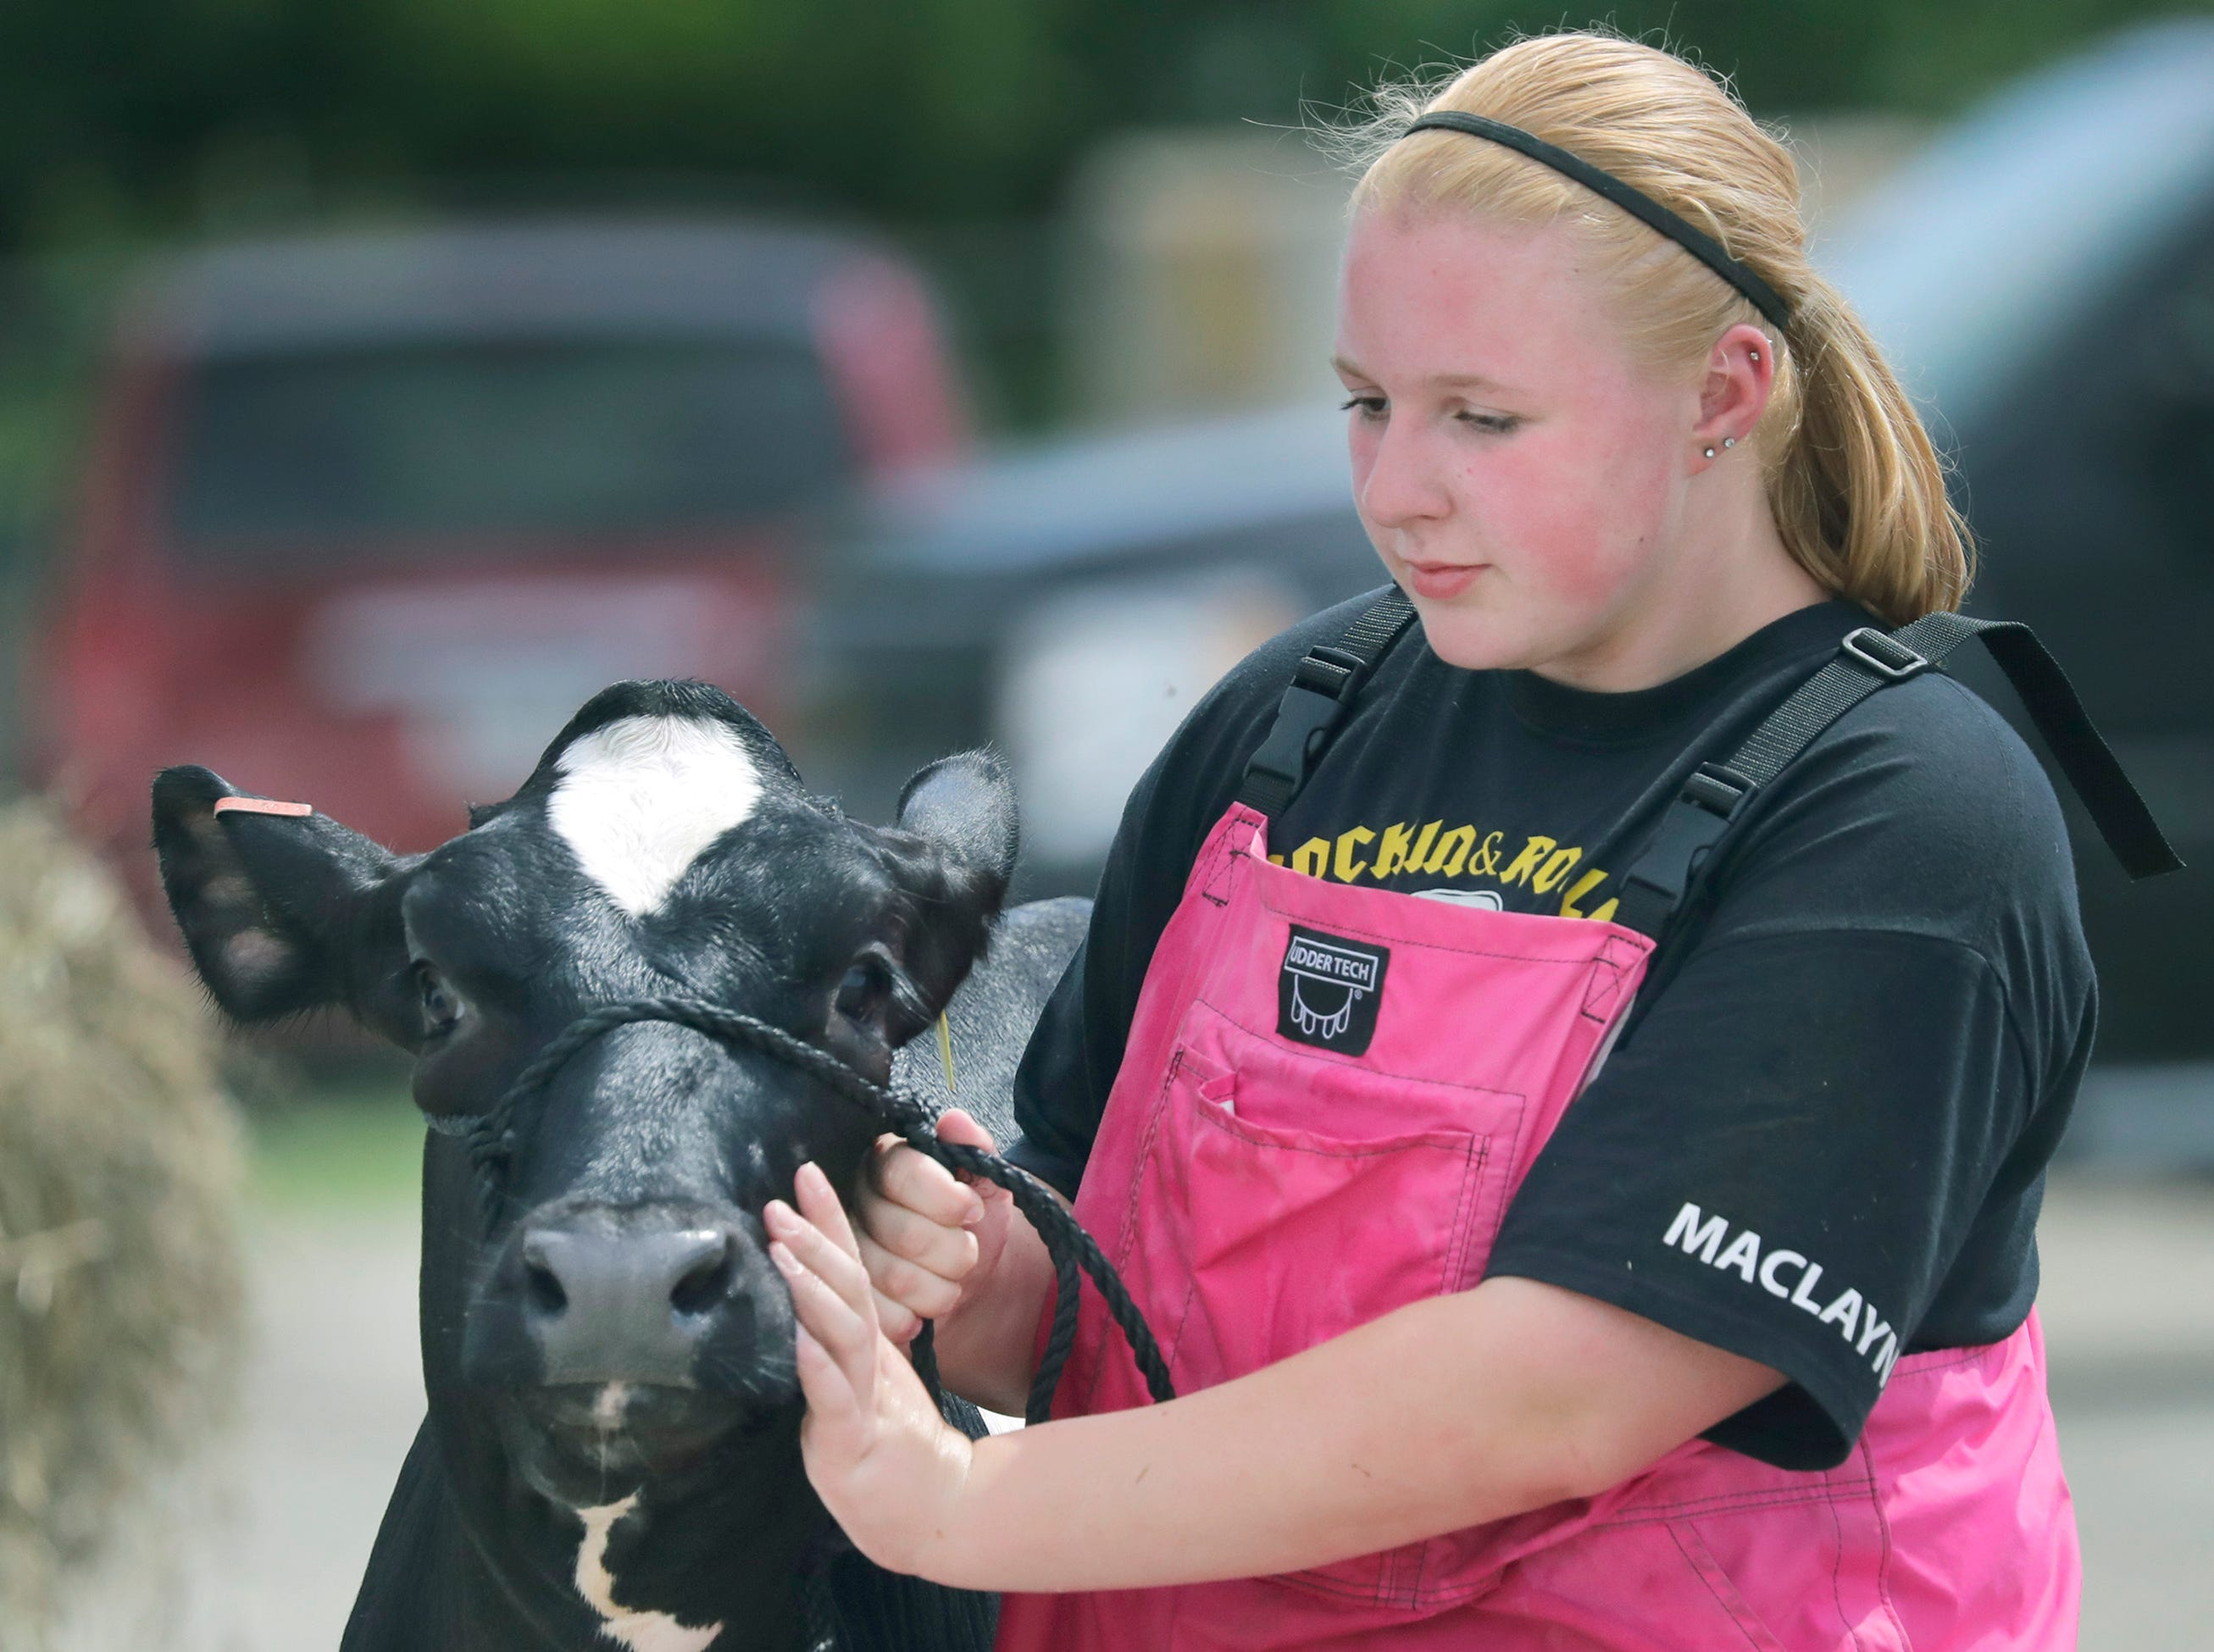 Maclayne Gilson during the Outagamie County Fair on Wednesday, July 25, 2018 in Seymour, Wis. 